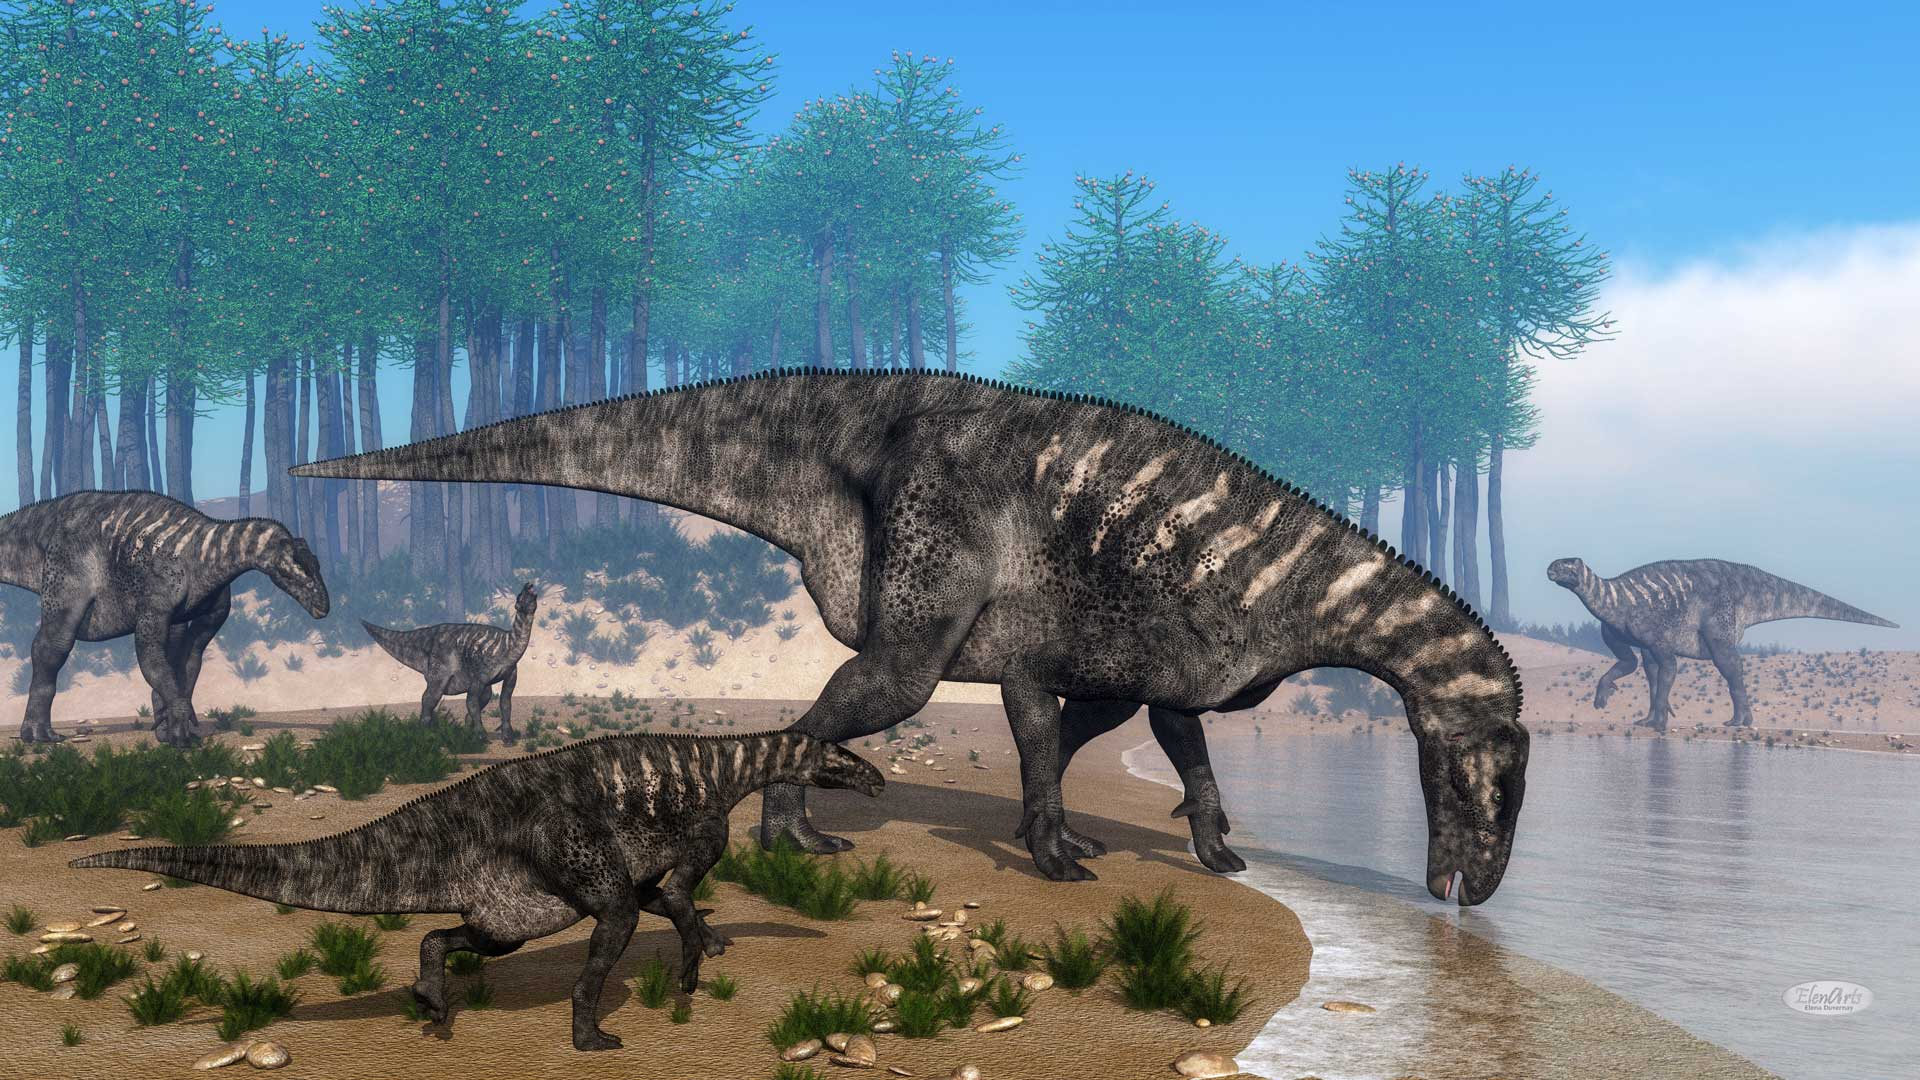 Iguanodon dinosaurs herd at the shoreline – 3D render